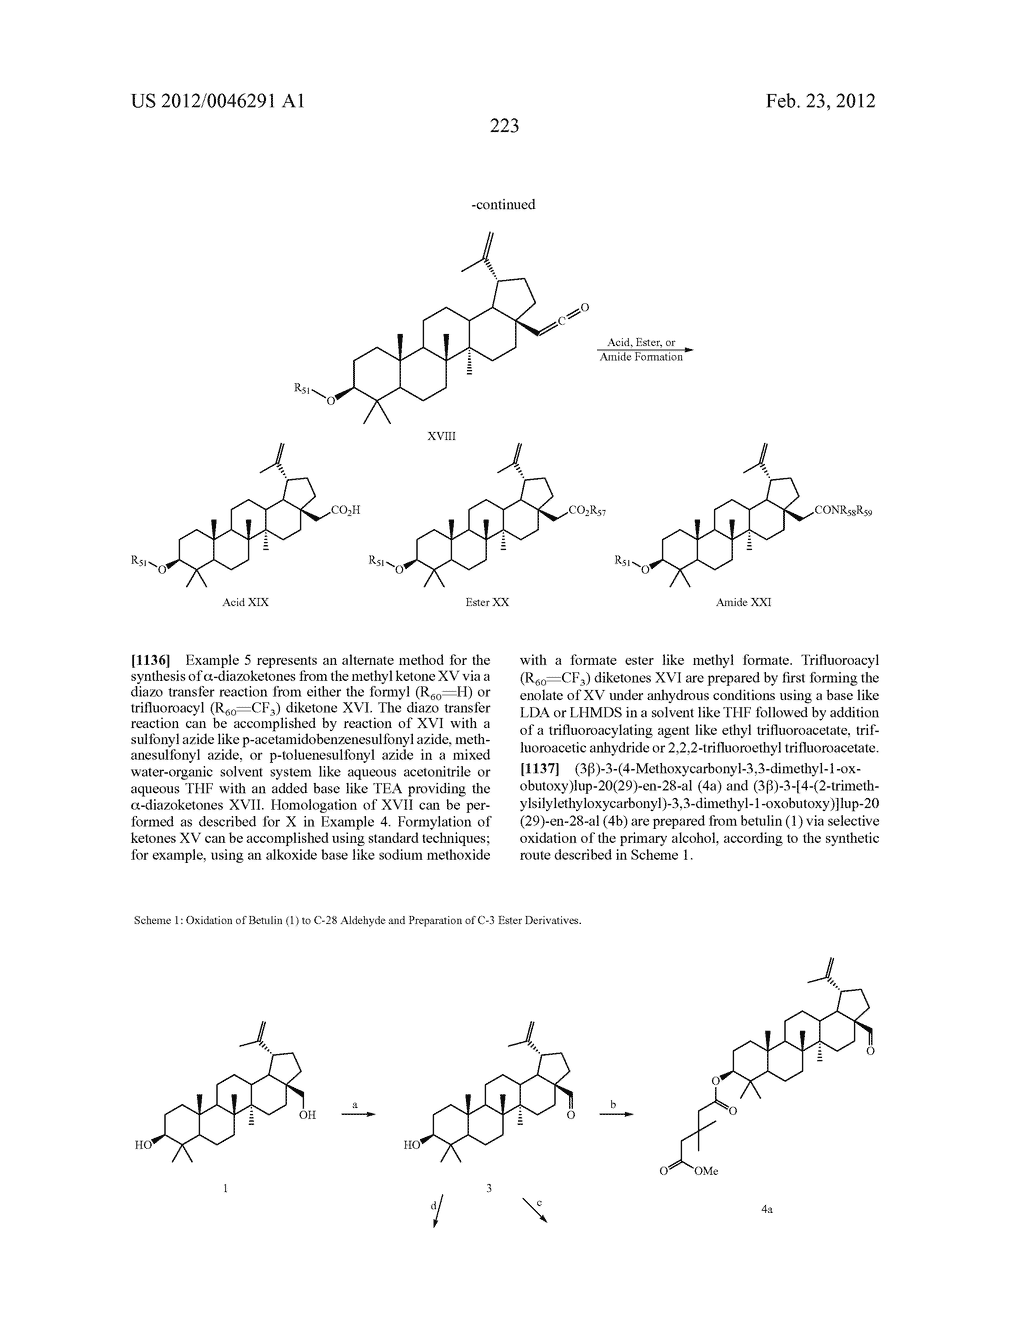 Extended Triterpene Derivatives - diagram, schematic, and image 223